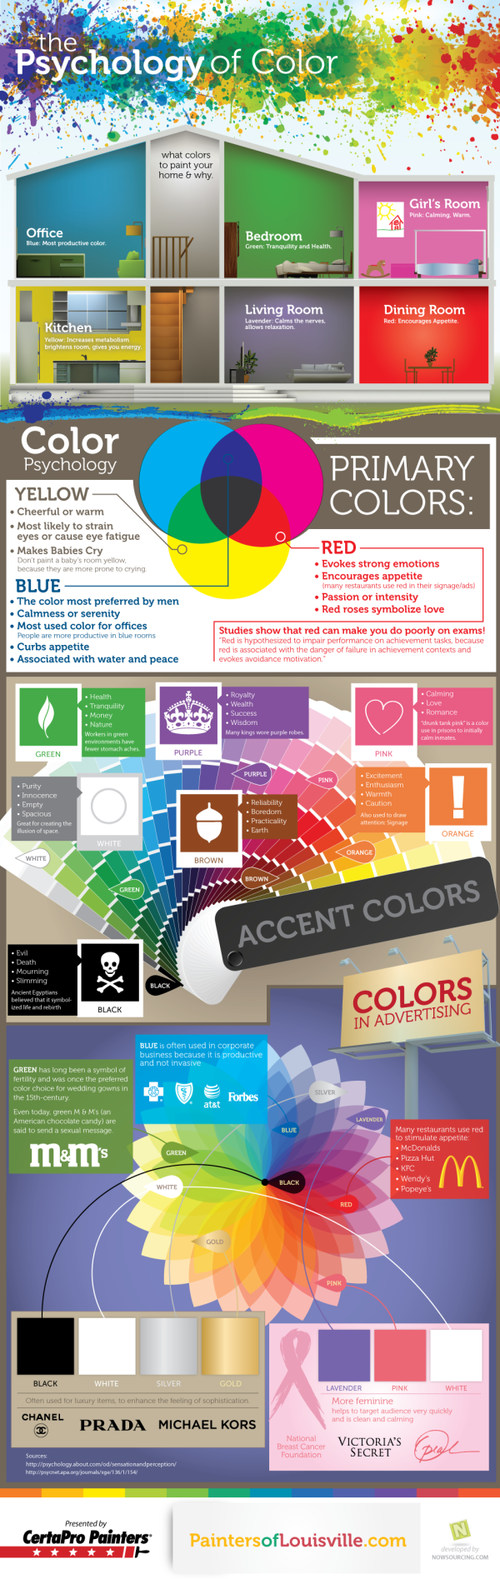 The-Psychology-of-Color-Infographic_large